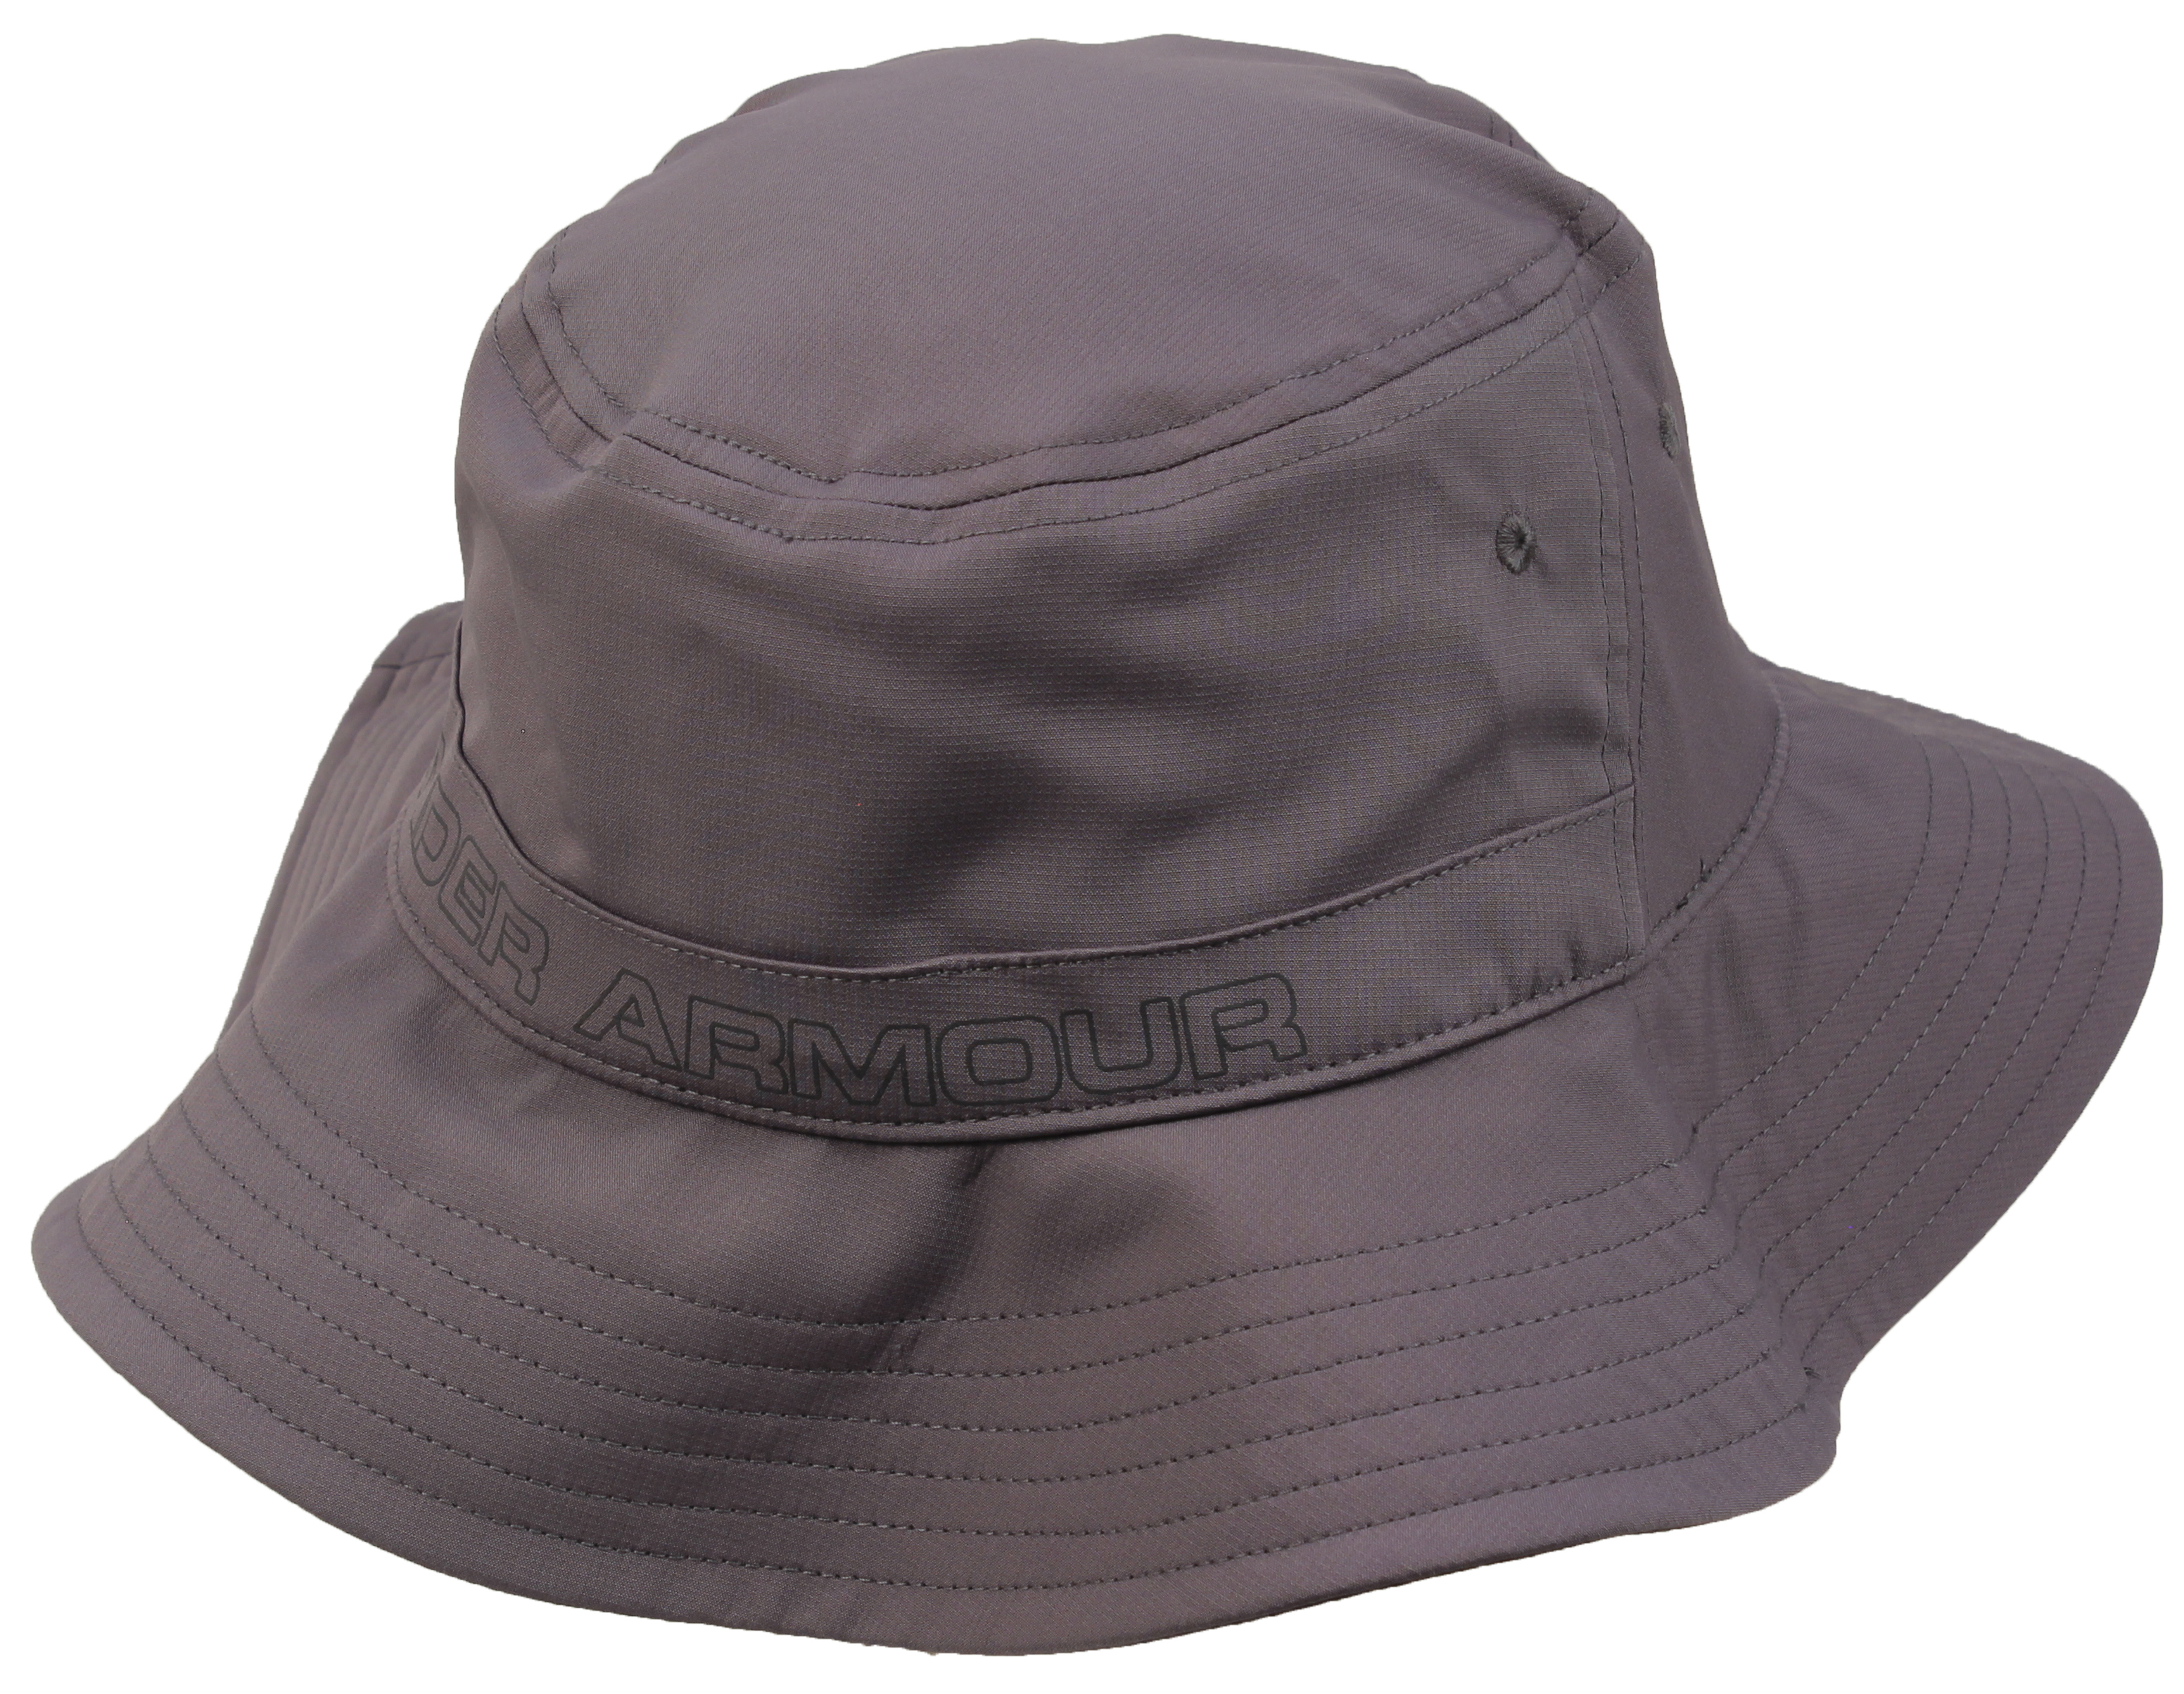 154aa080cf7b7 Under Armour Headline Bucket Hat - Graphite   Black For Sale at ...